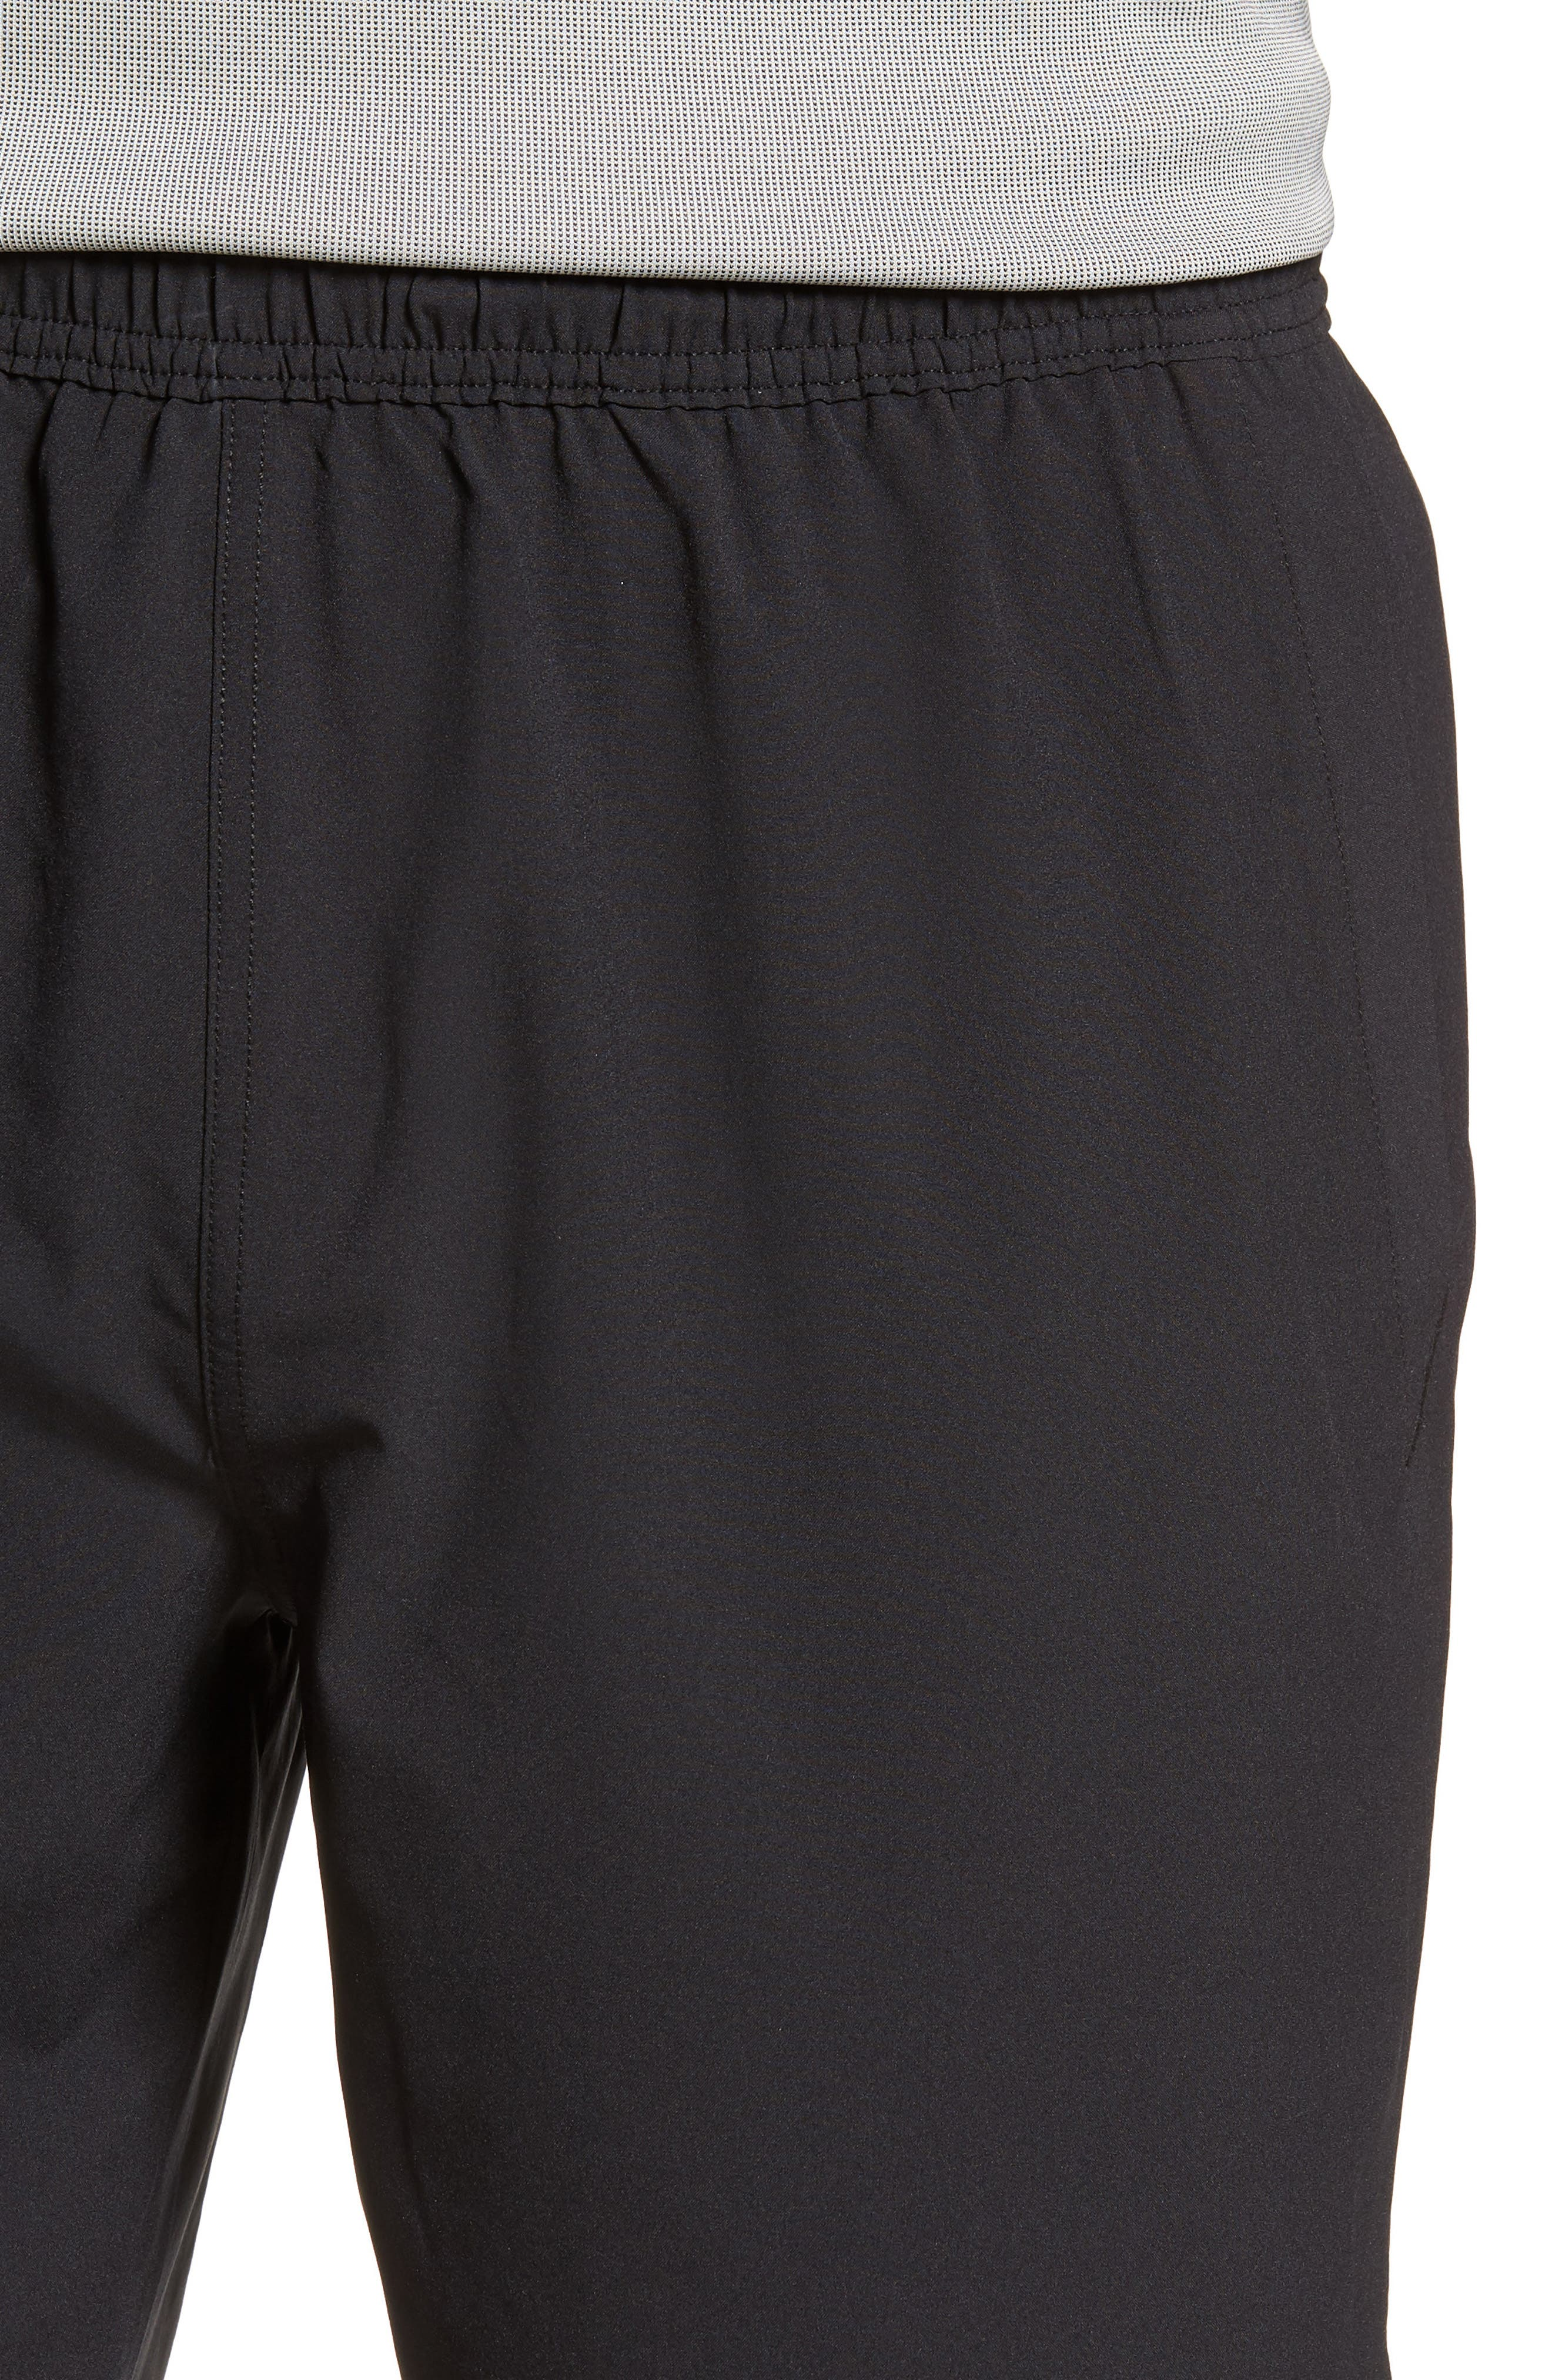 ZELLA, Graphite Perforated Shorts, Alternate thumbnail 5, color, BLACK